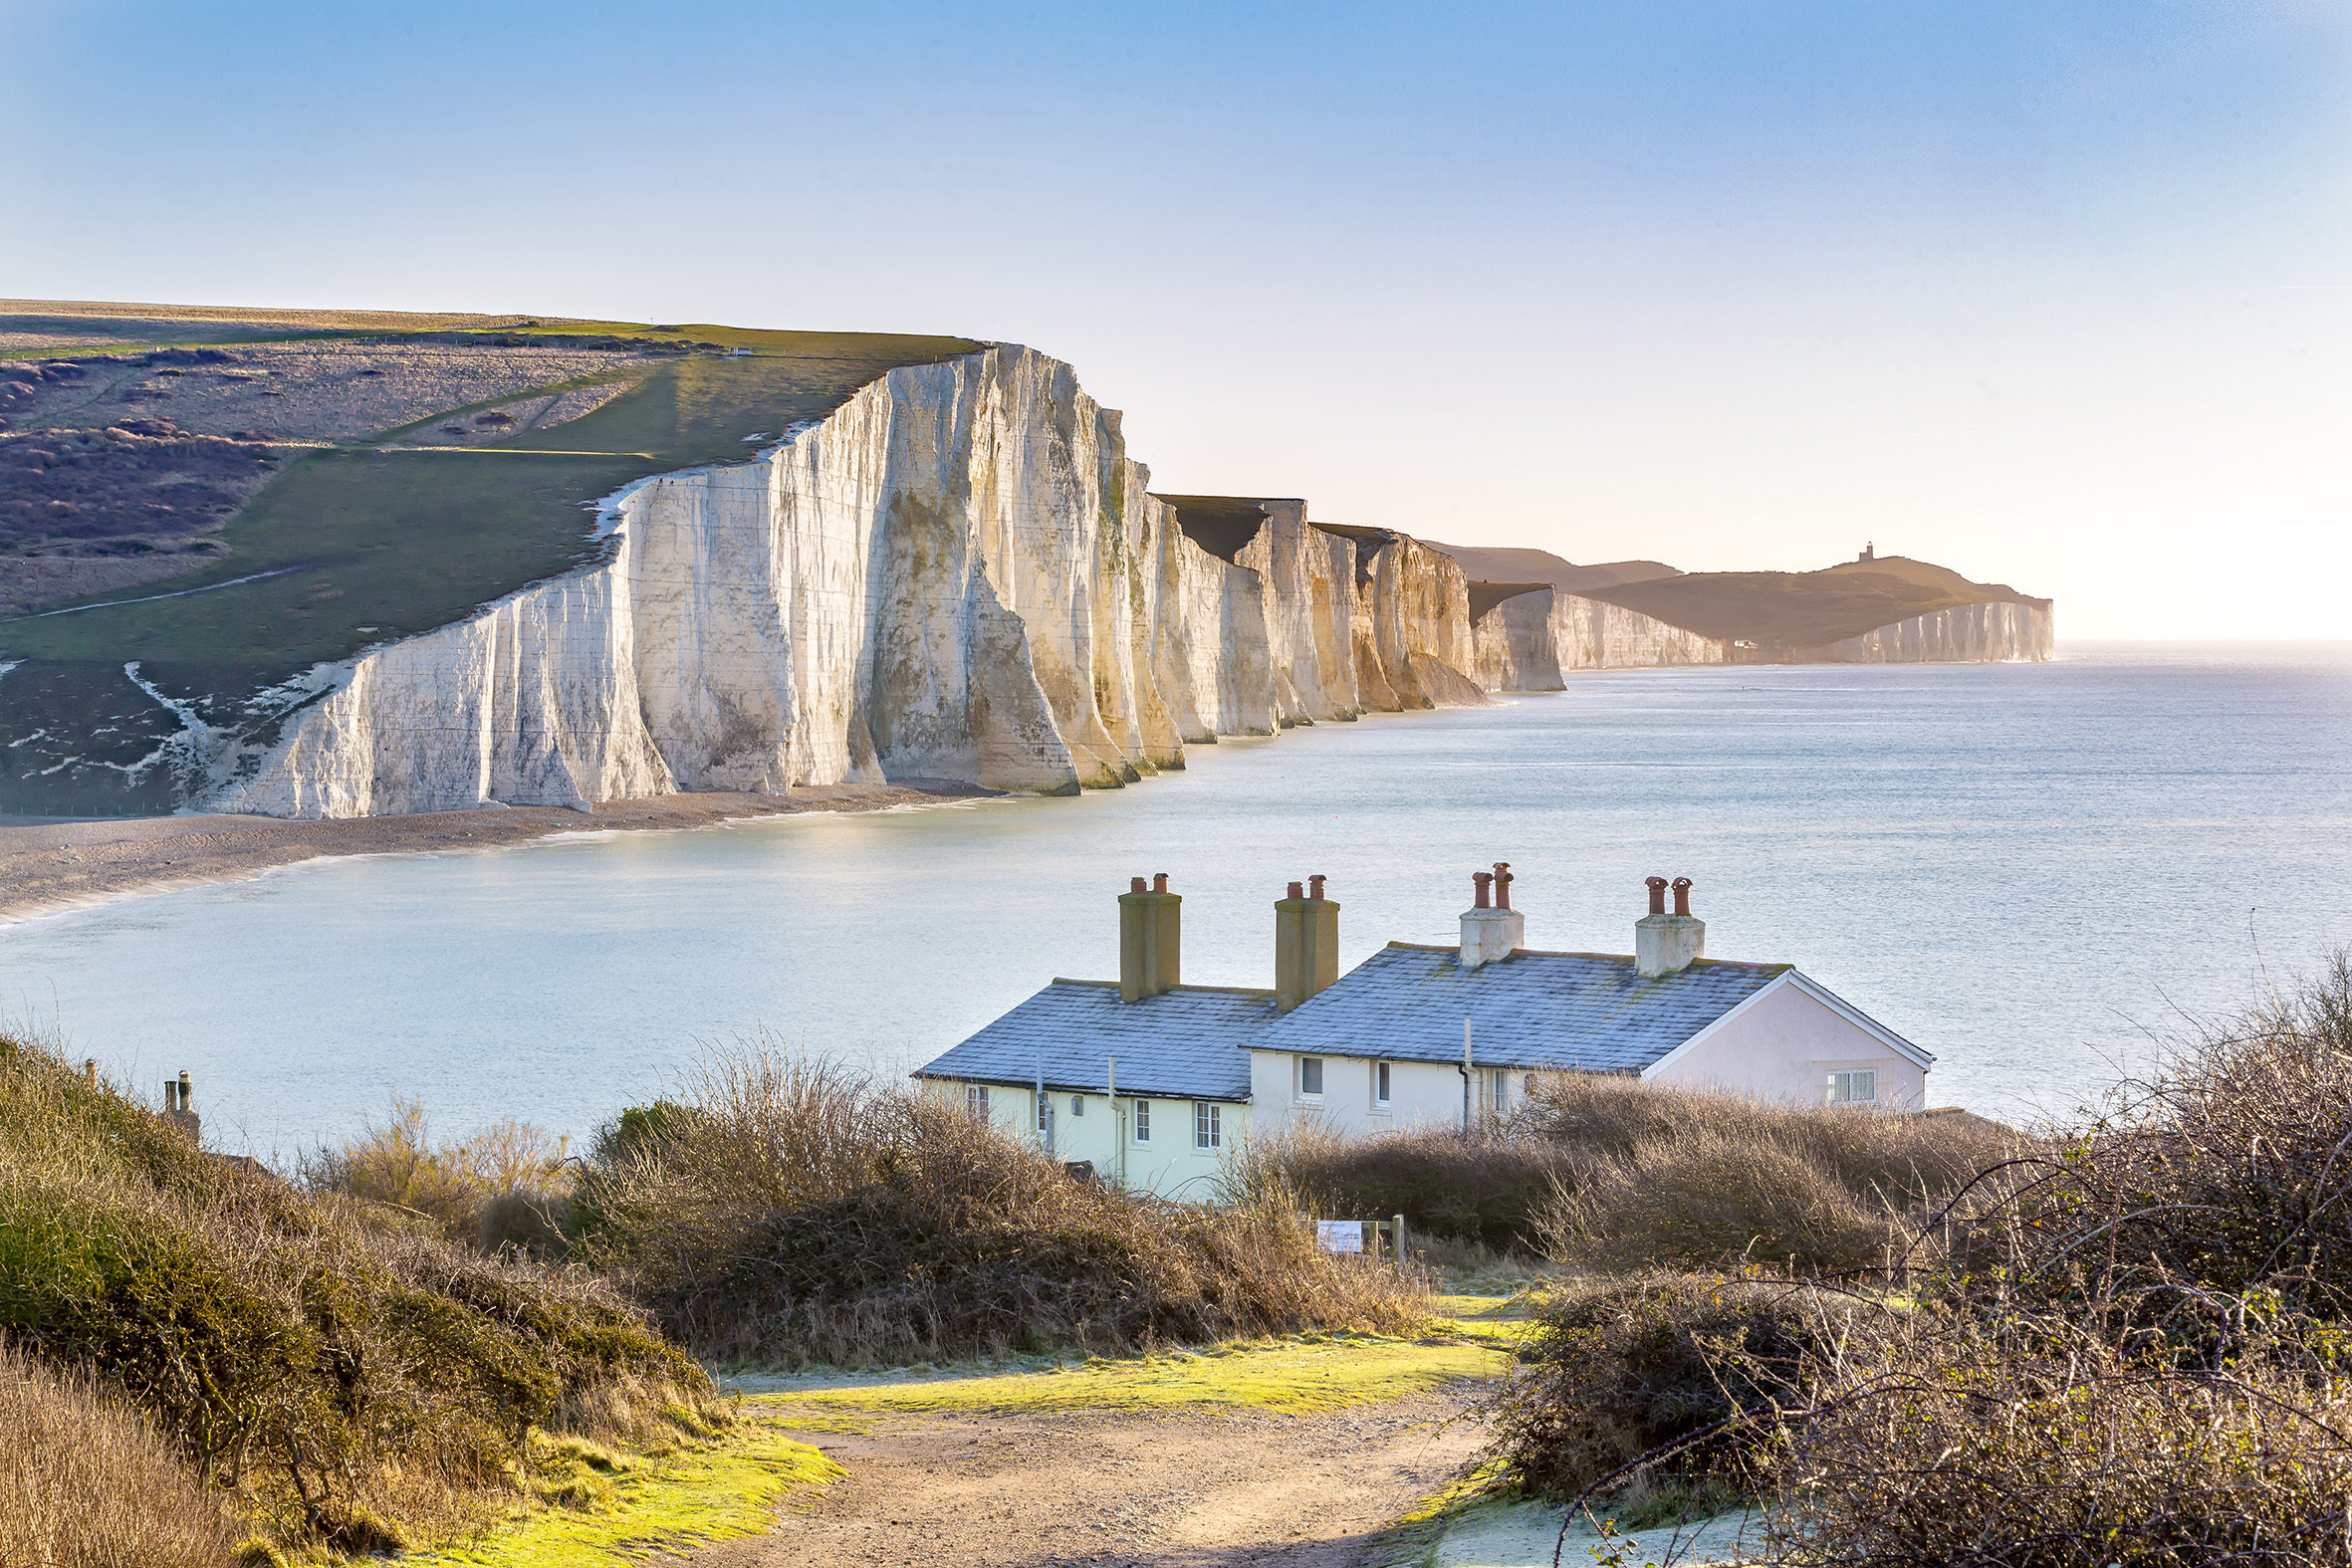 The Coast Guard Cottages & Seven Sisters Chalk Cliffs just outside Eastbourne, Sussex, England, UK